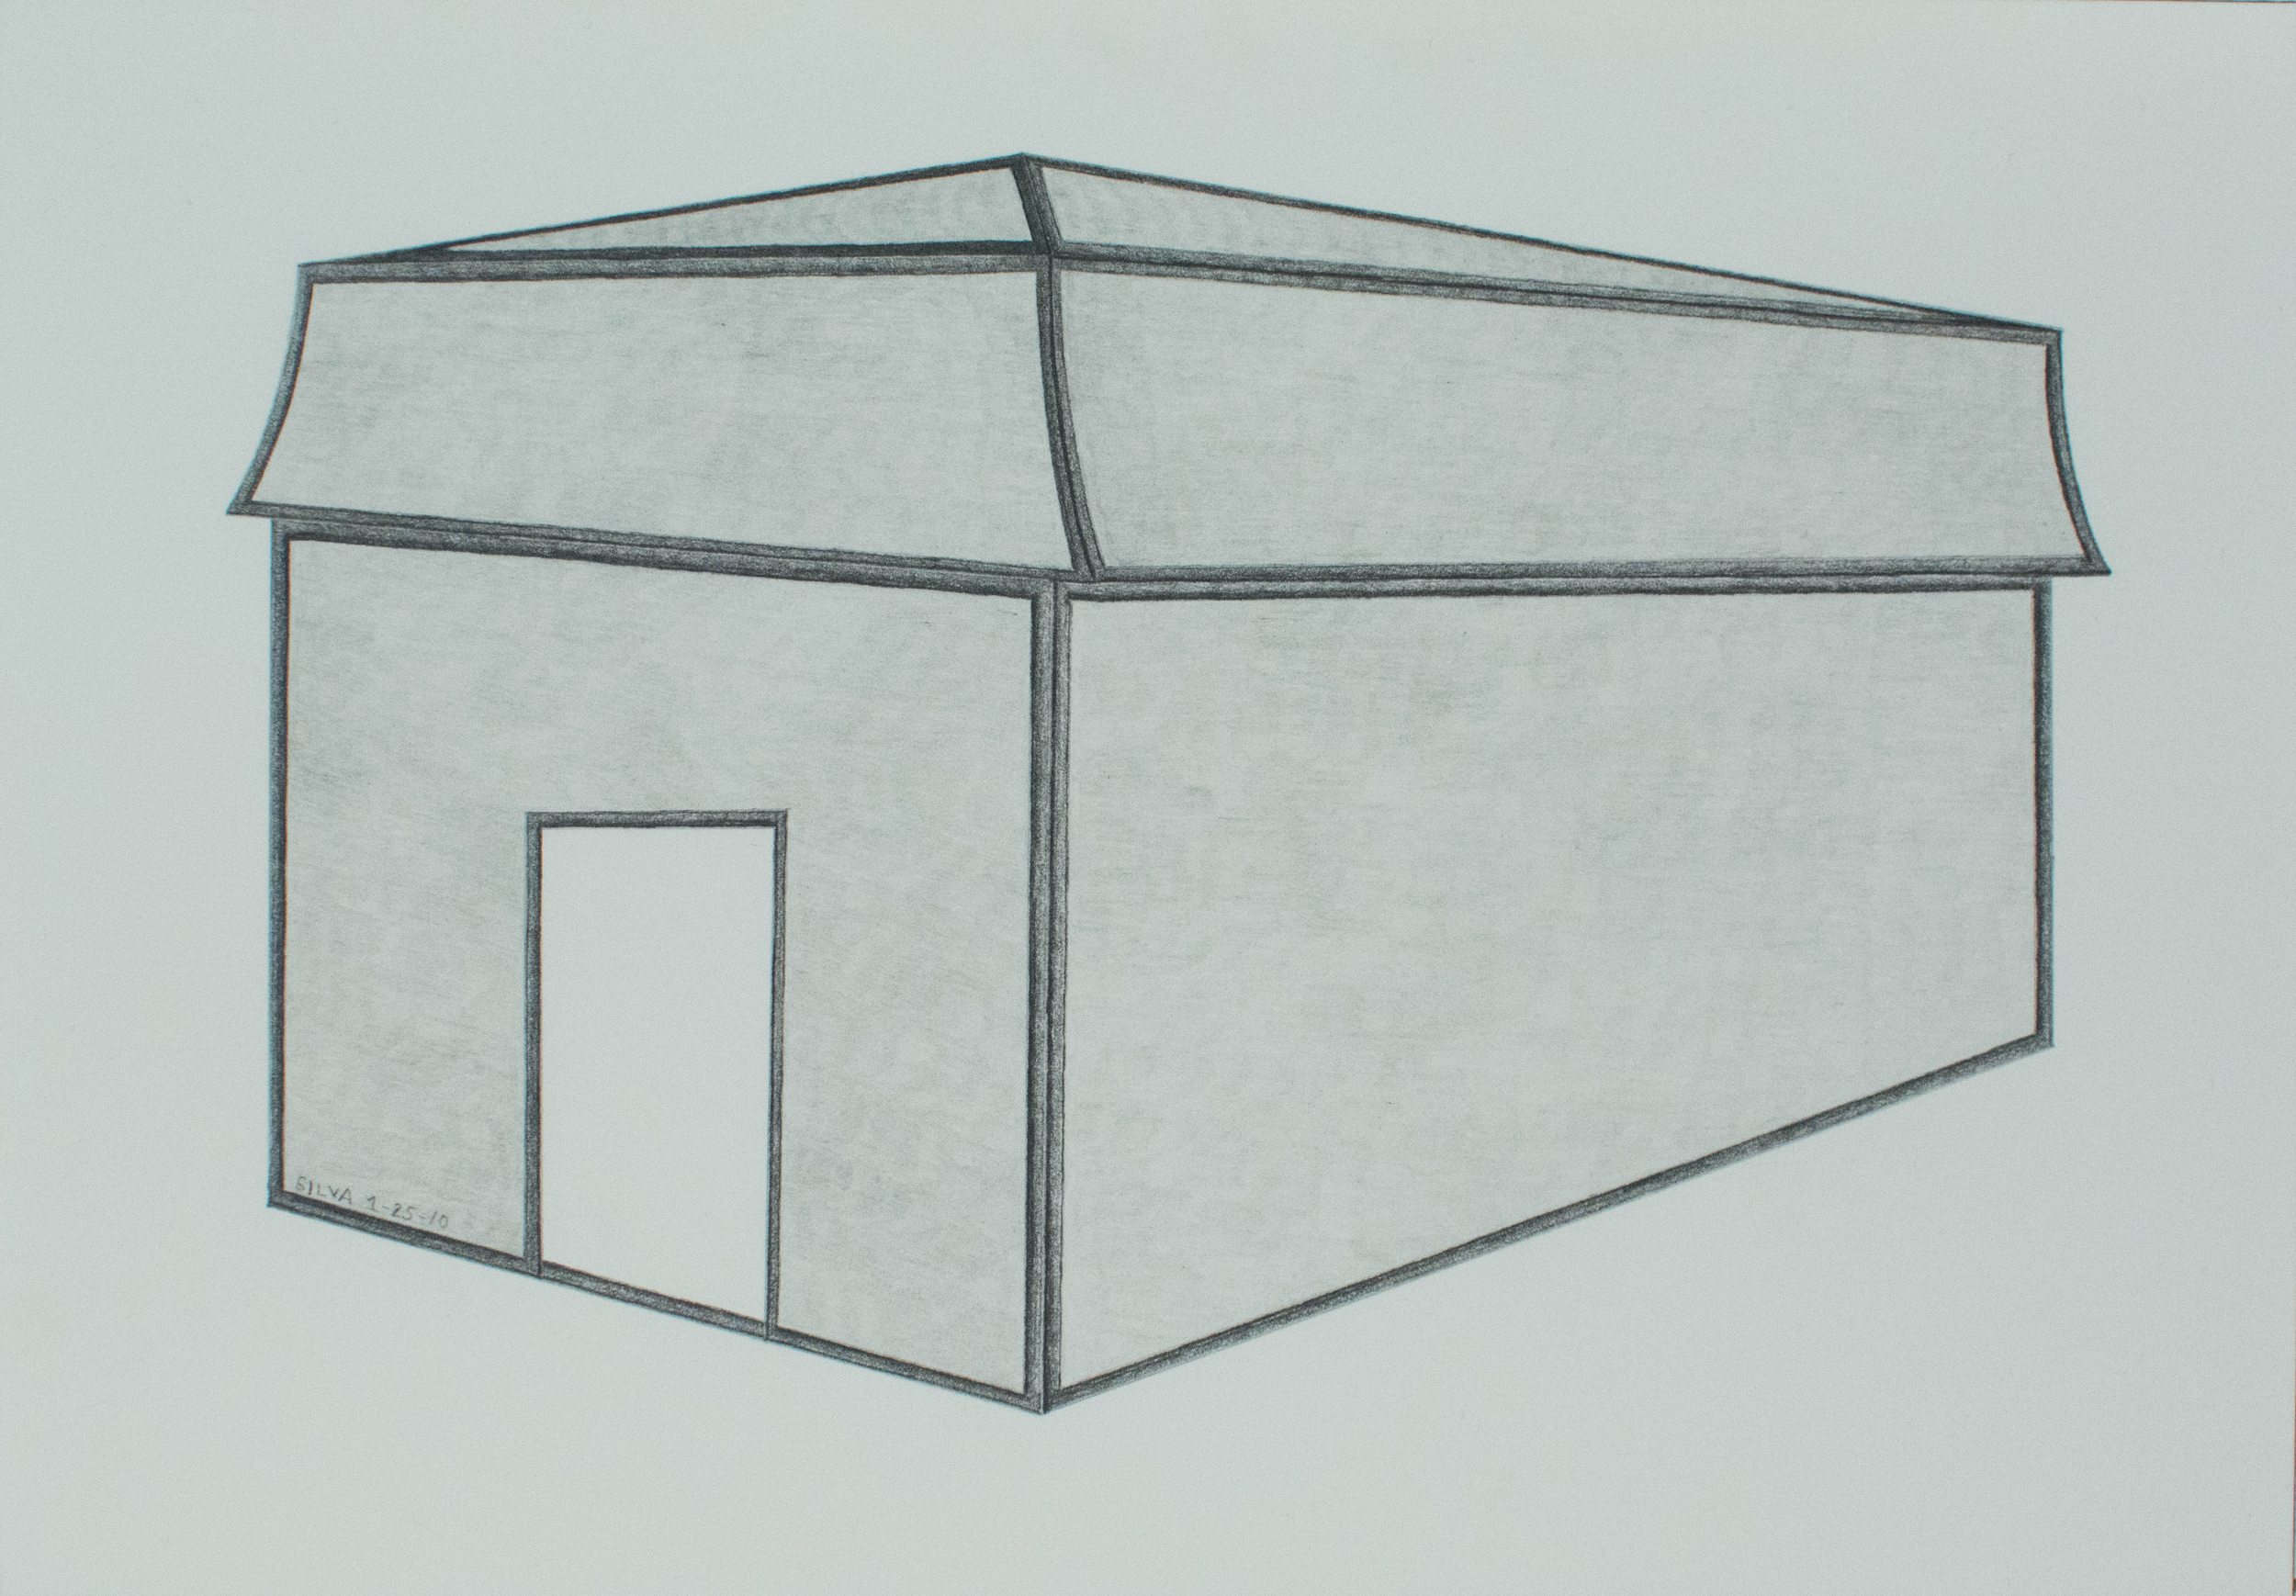 1-25-10, 2010, Graphite on paper, 7 x 10 inches